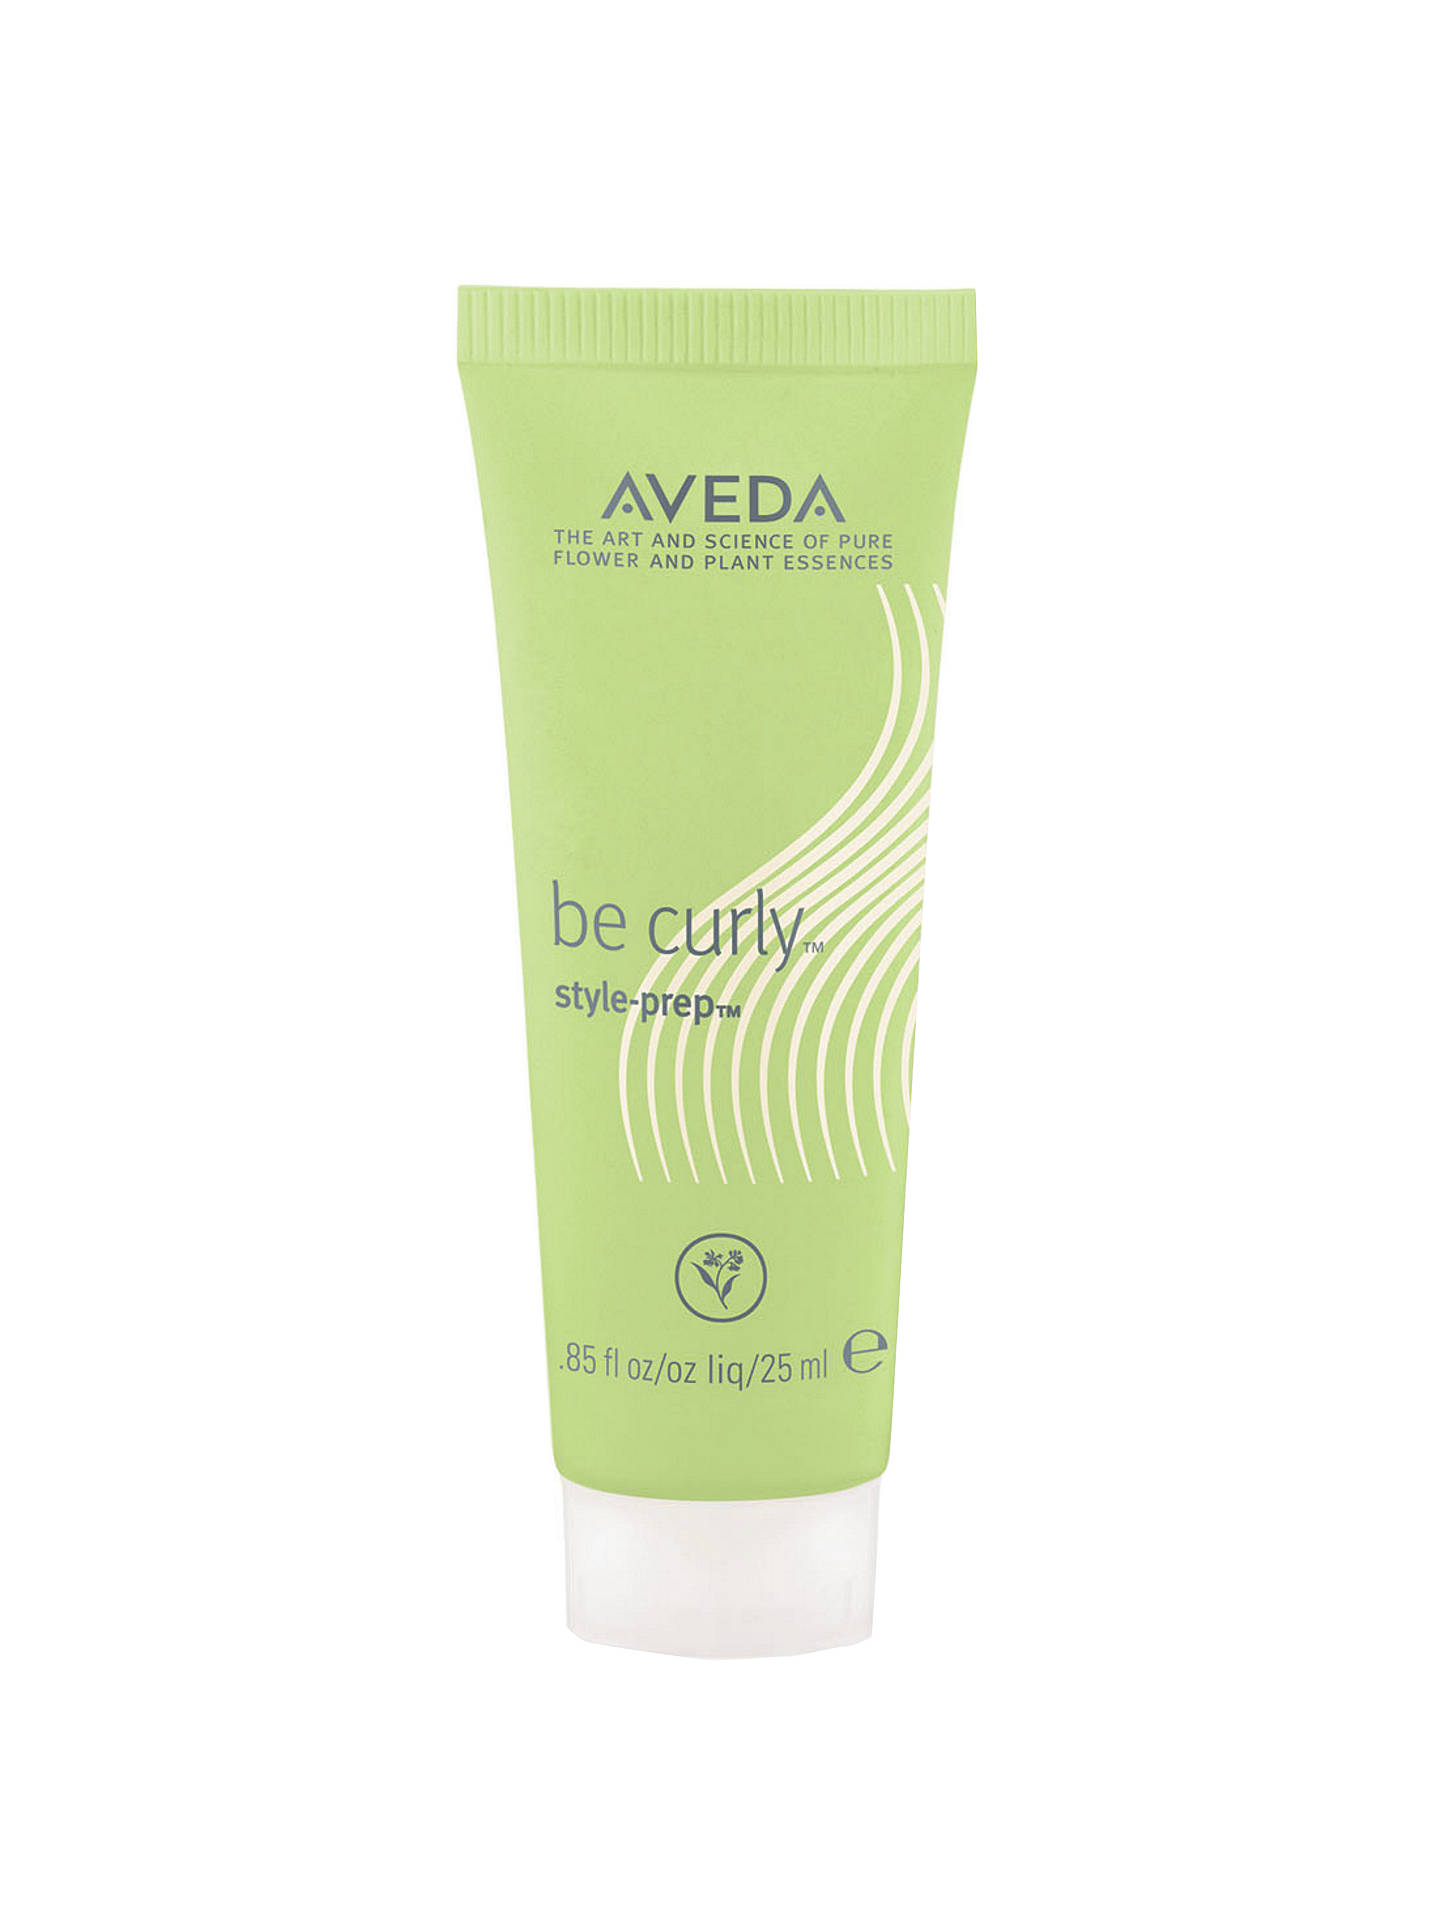 Buy Aveda Be Curly™ Style-Prep, 25ml Online at johnlewis.com